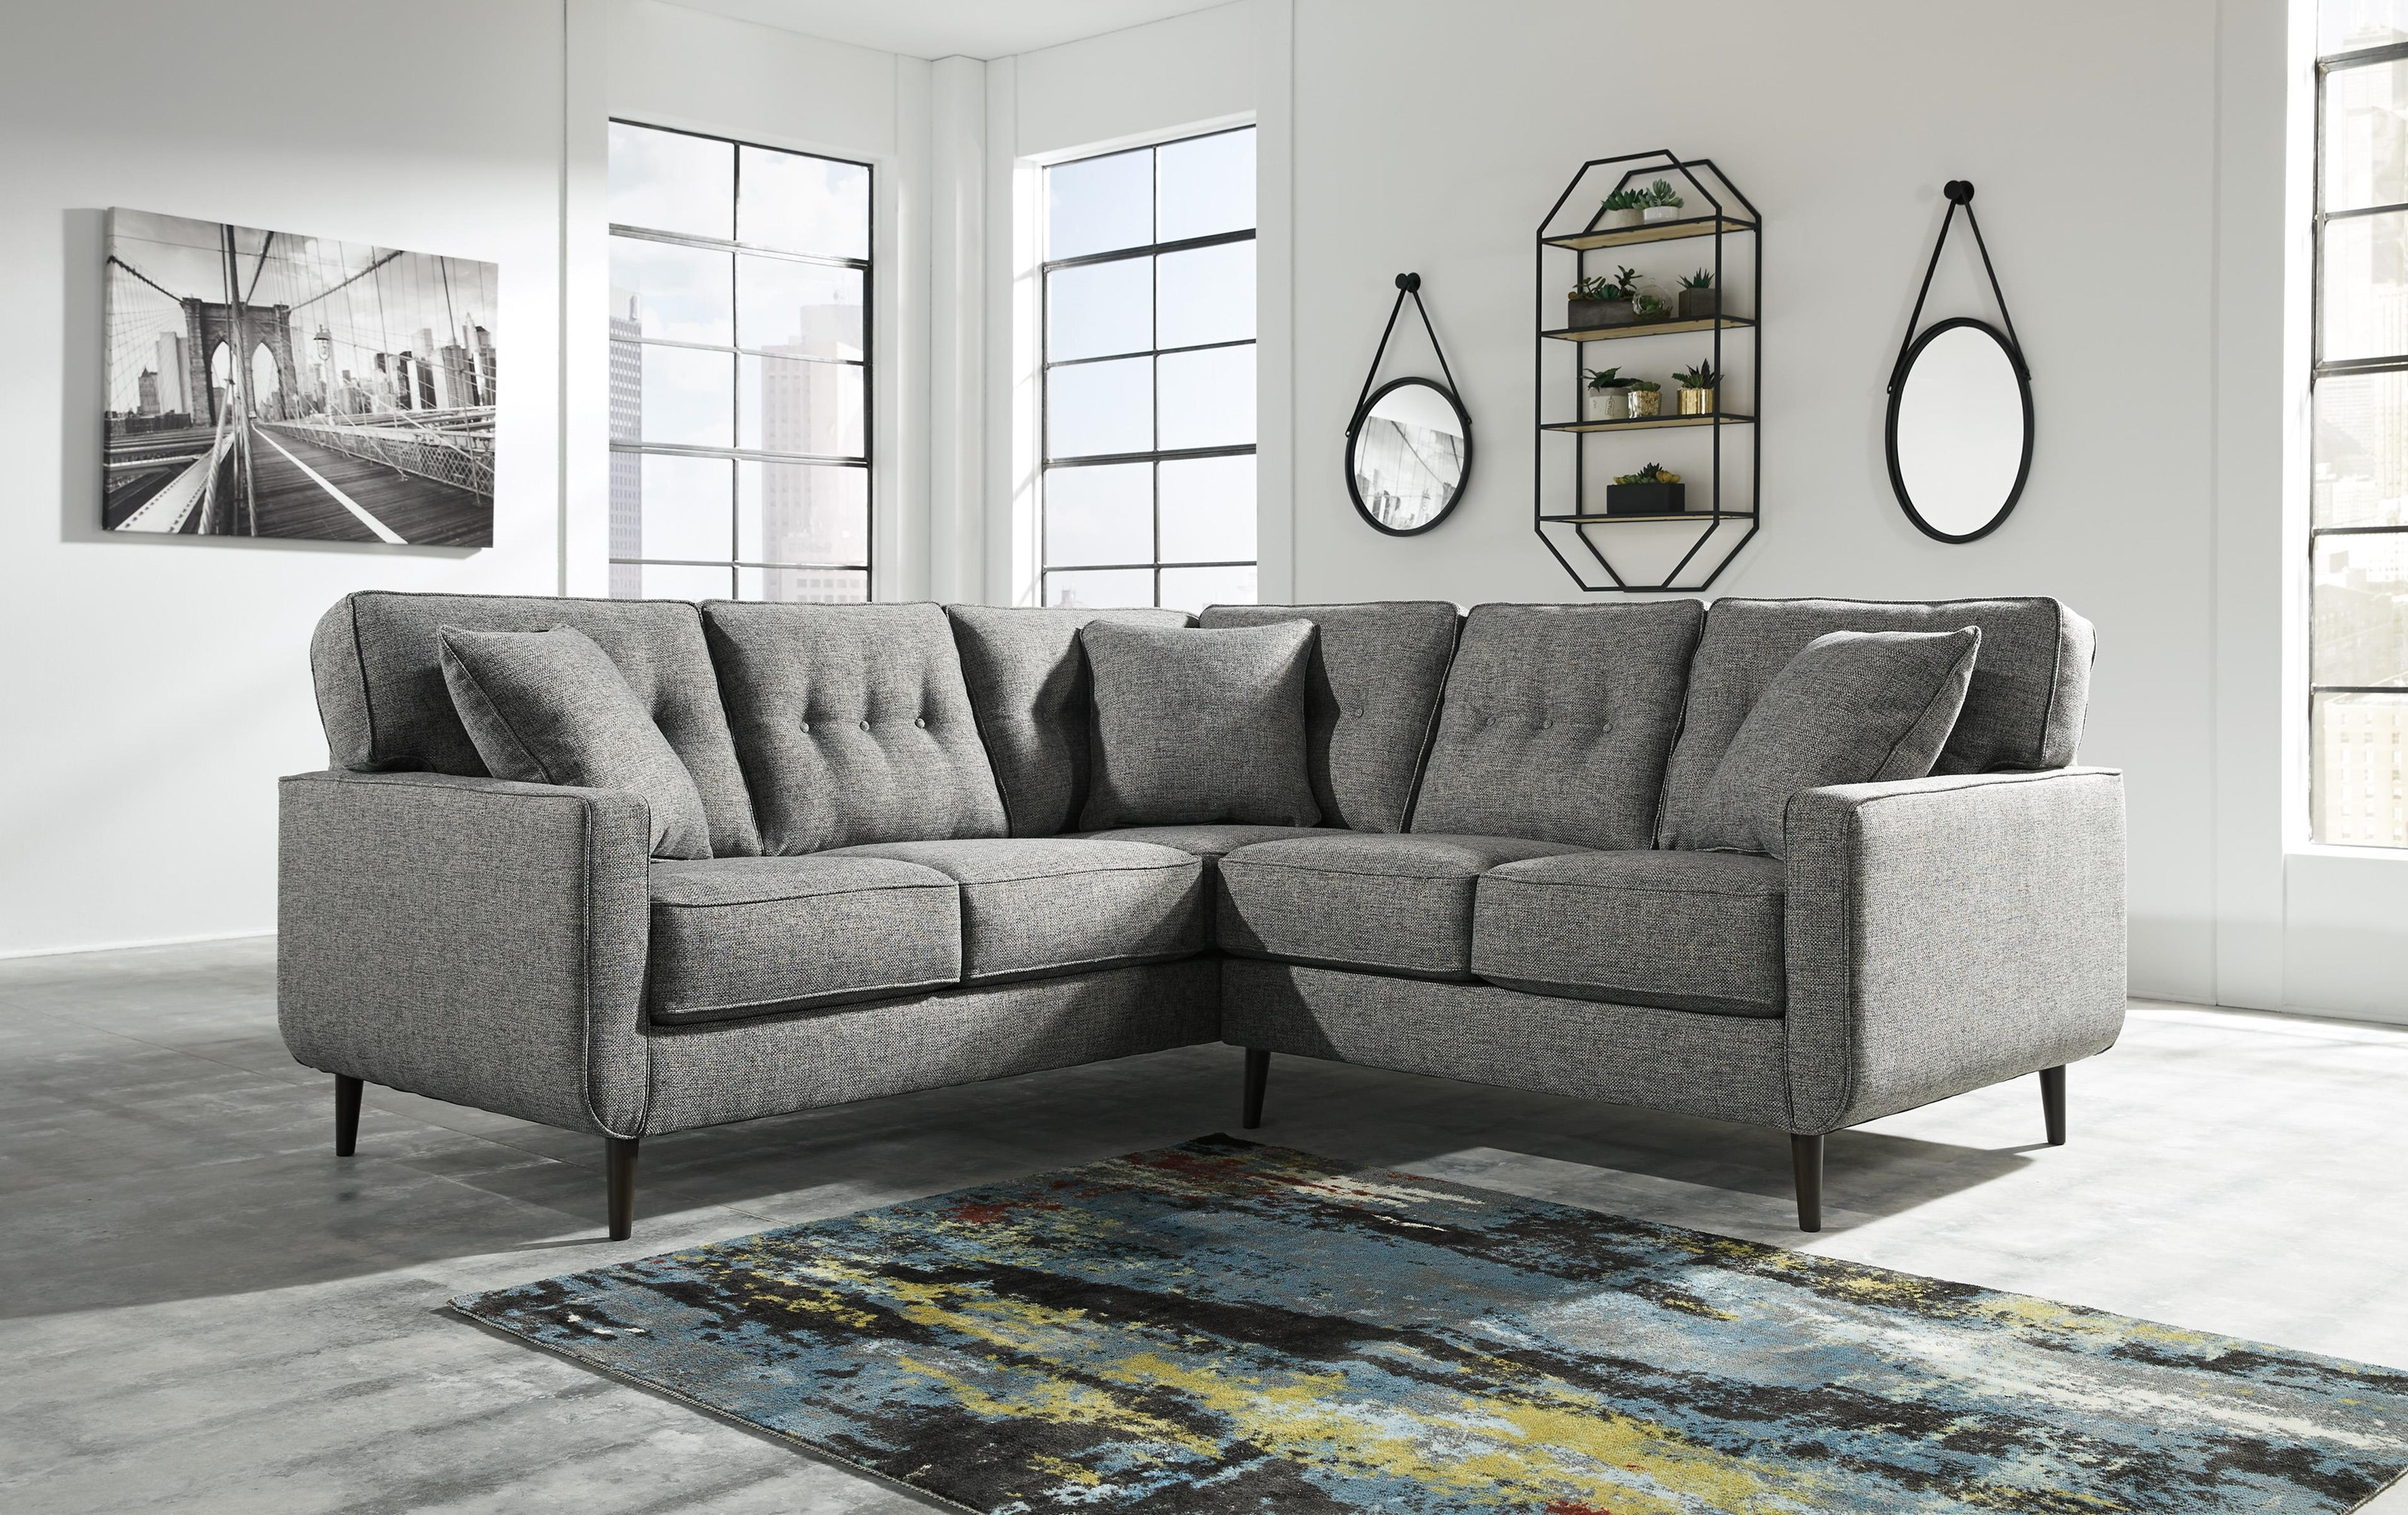 2 Piece Left Arm Facing Sectional with Accen